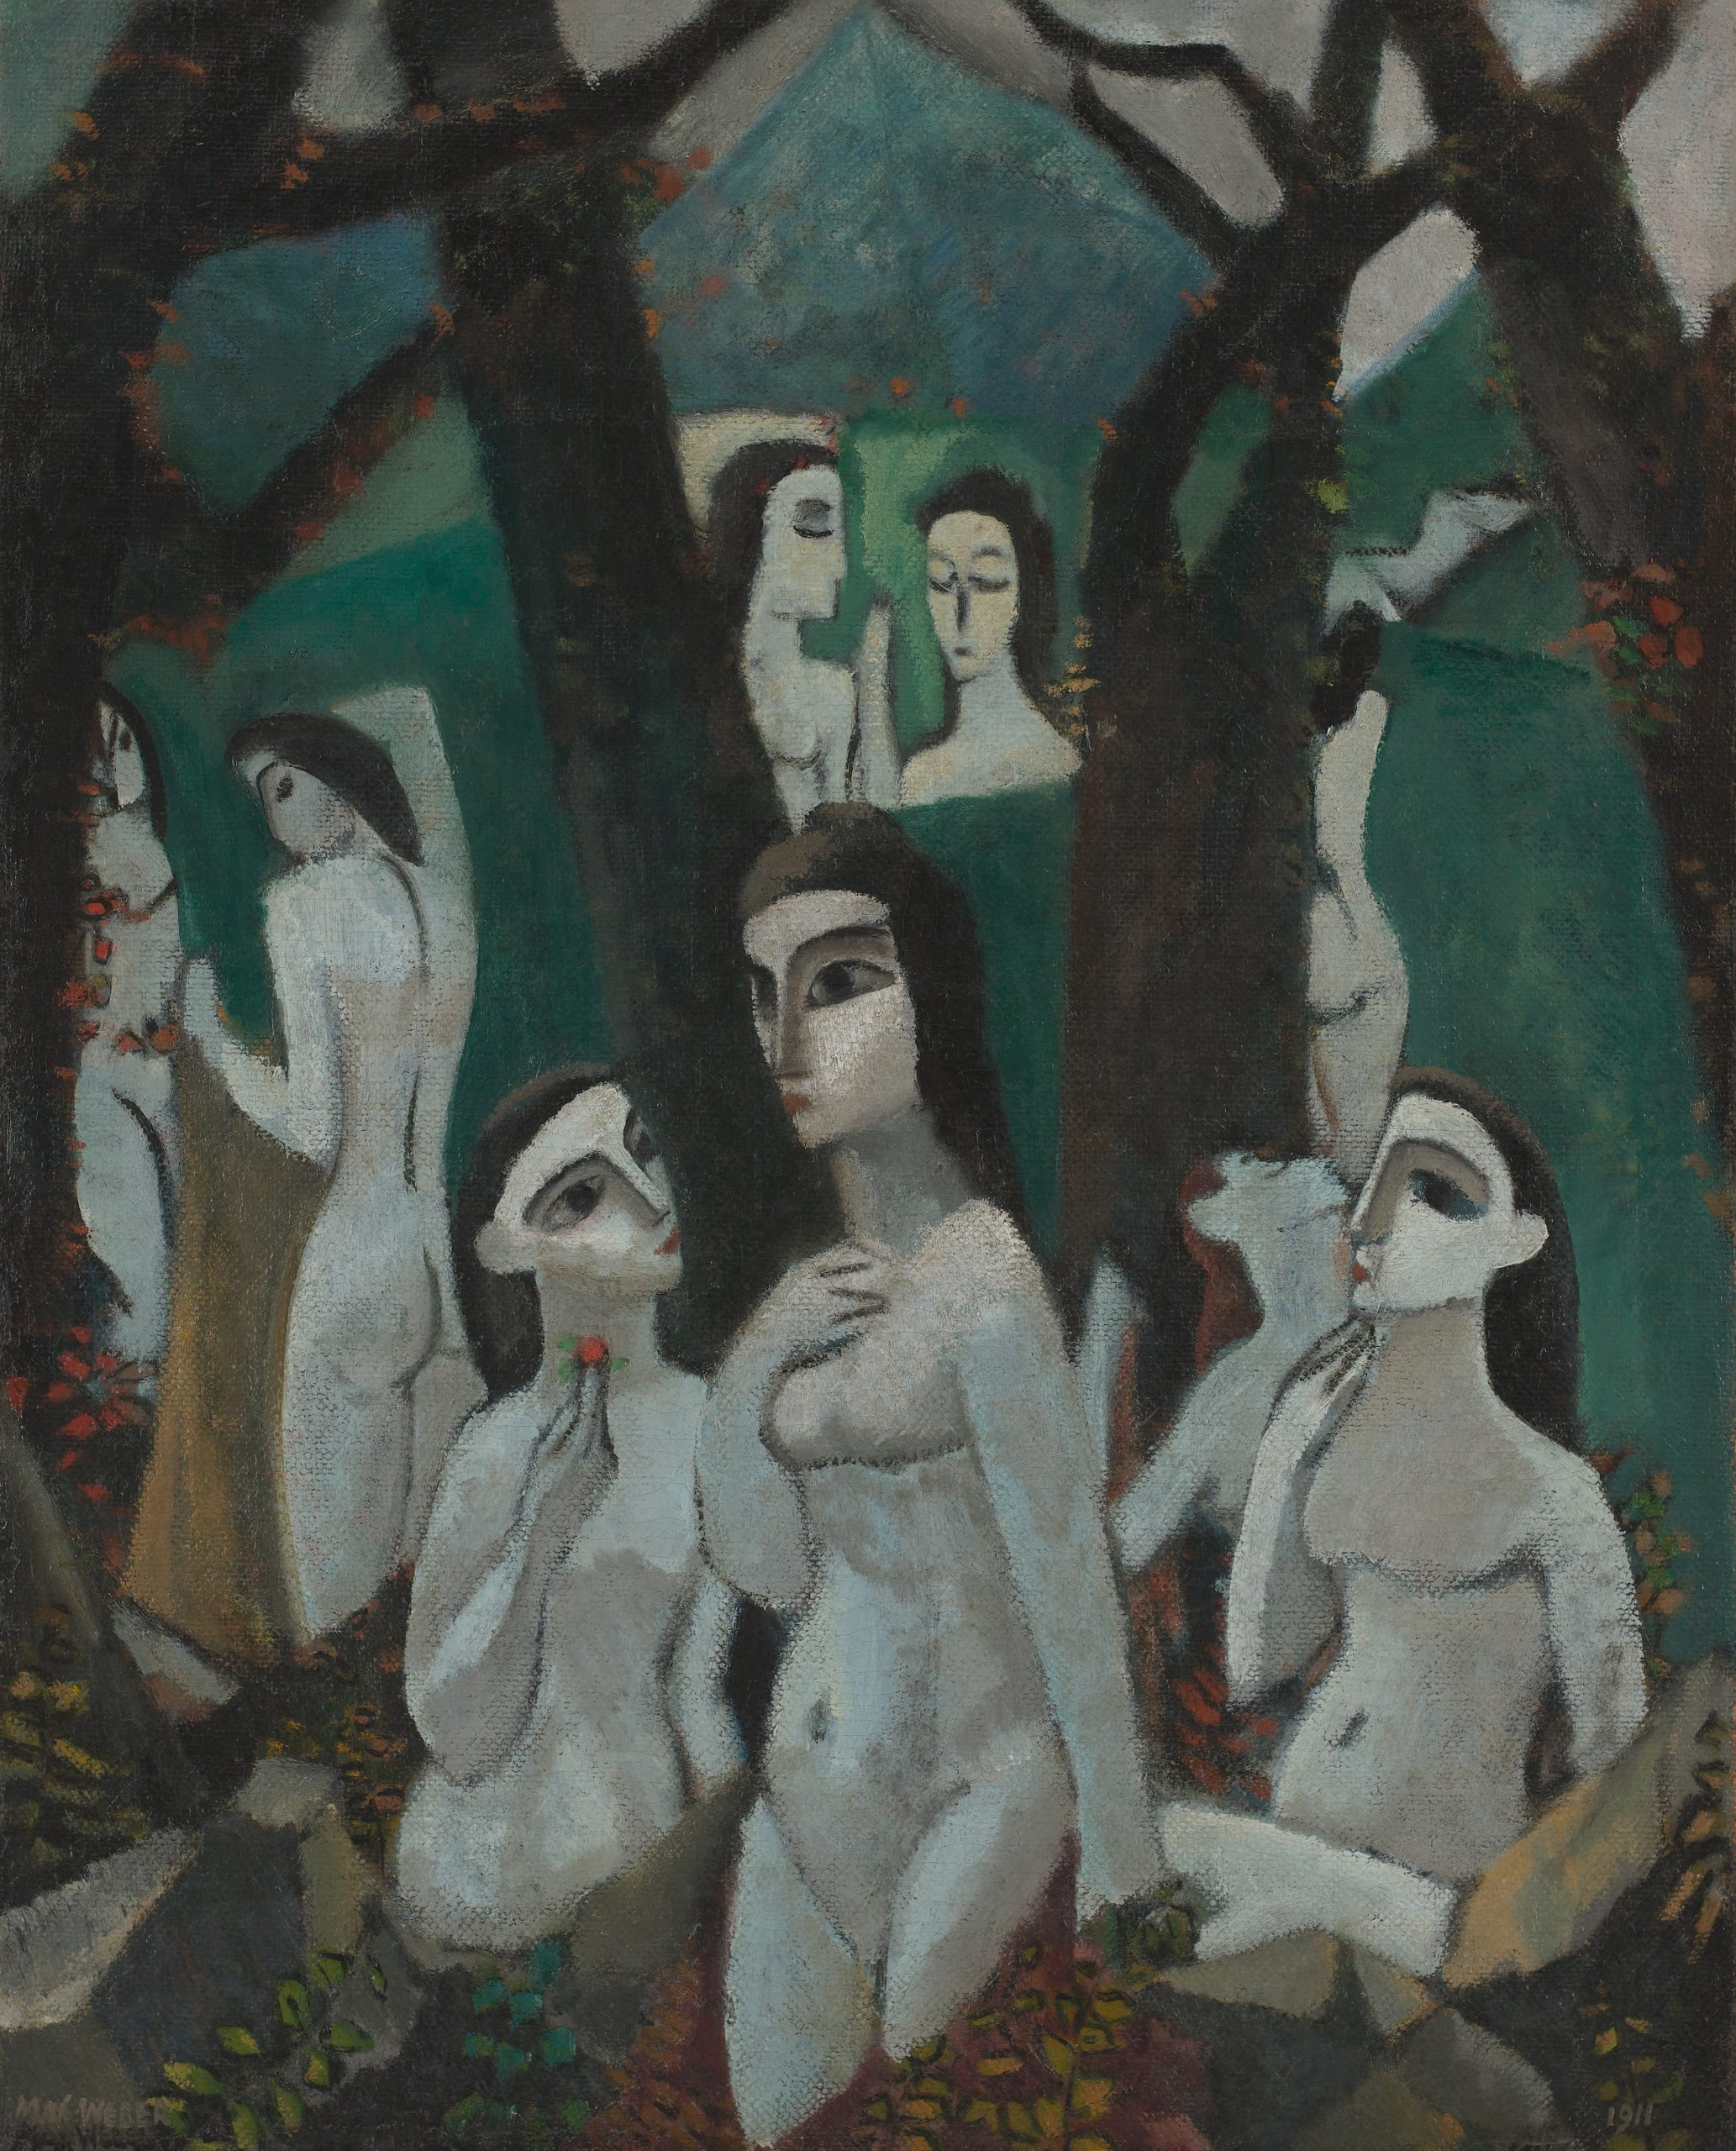 A group of pale, nude women scattered among the trees in a forest.